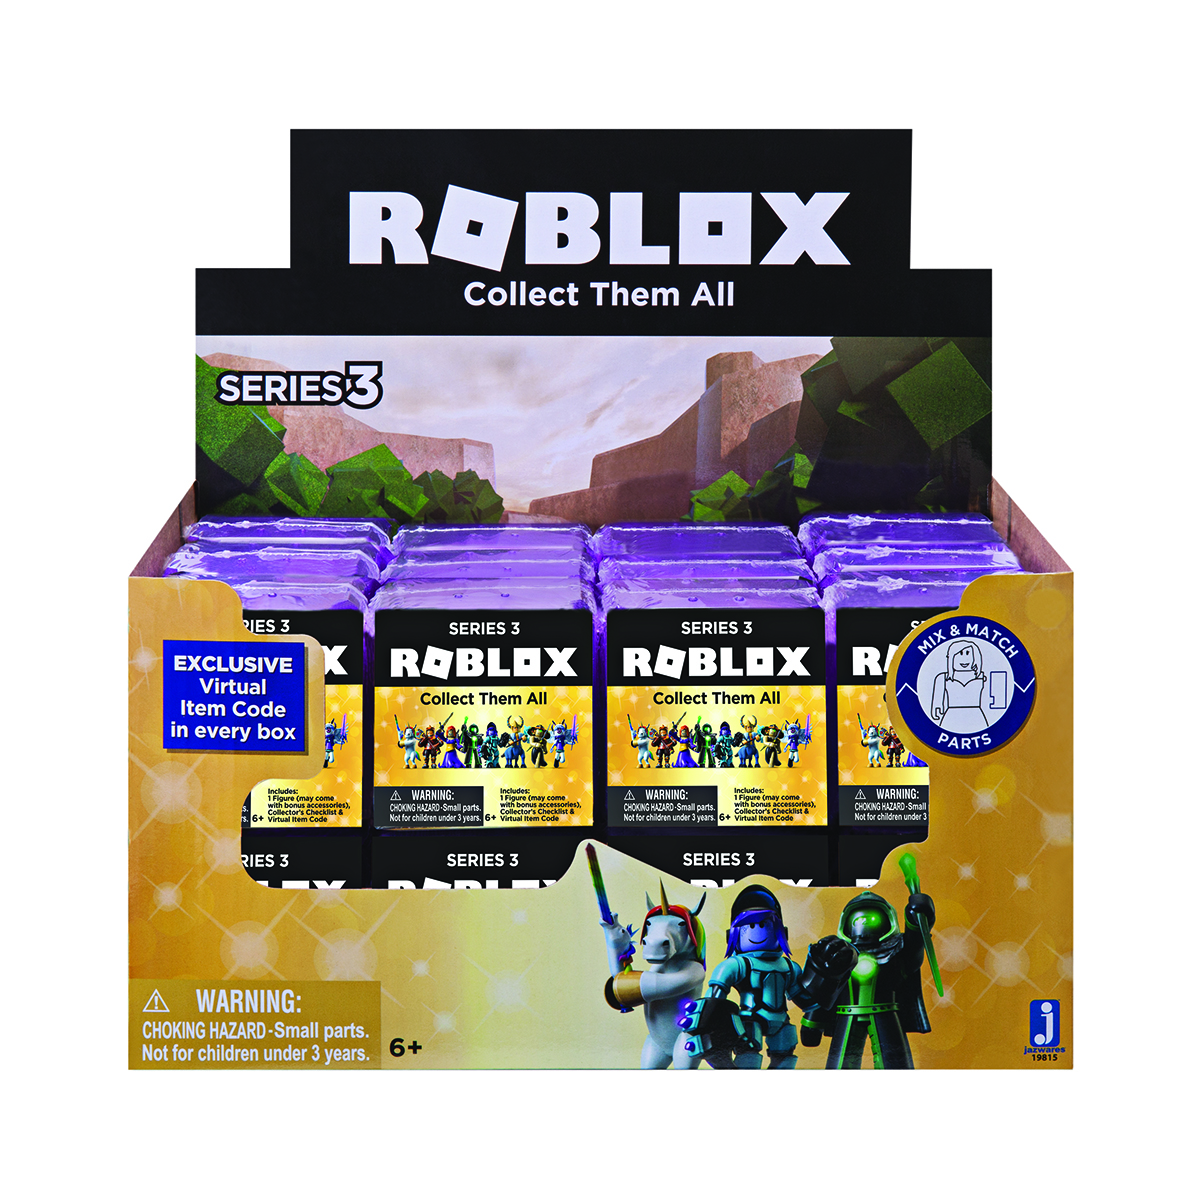 Figurina surpriza Celebrity Roblox S3 19815